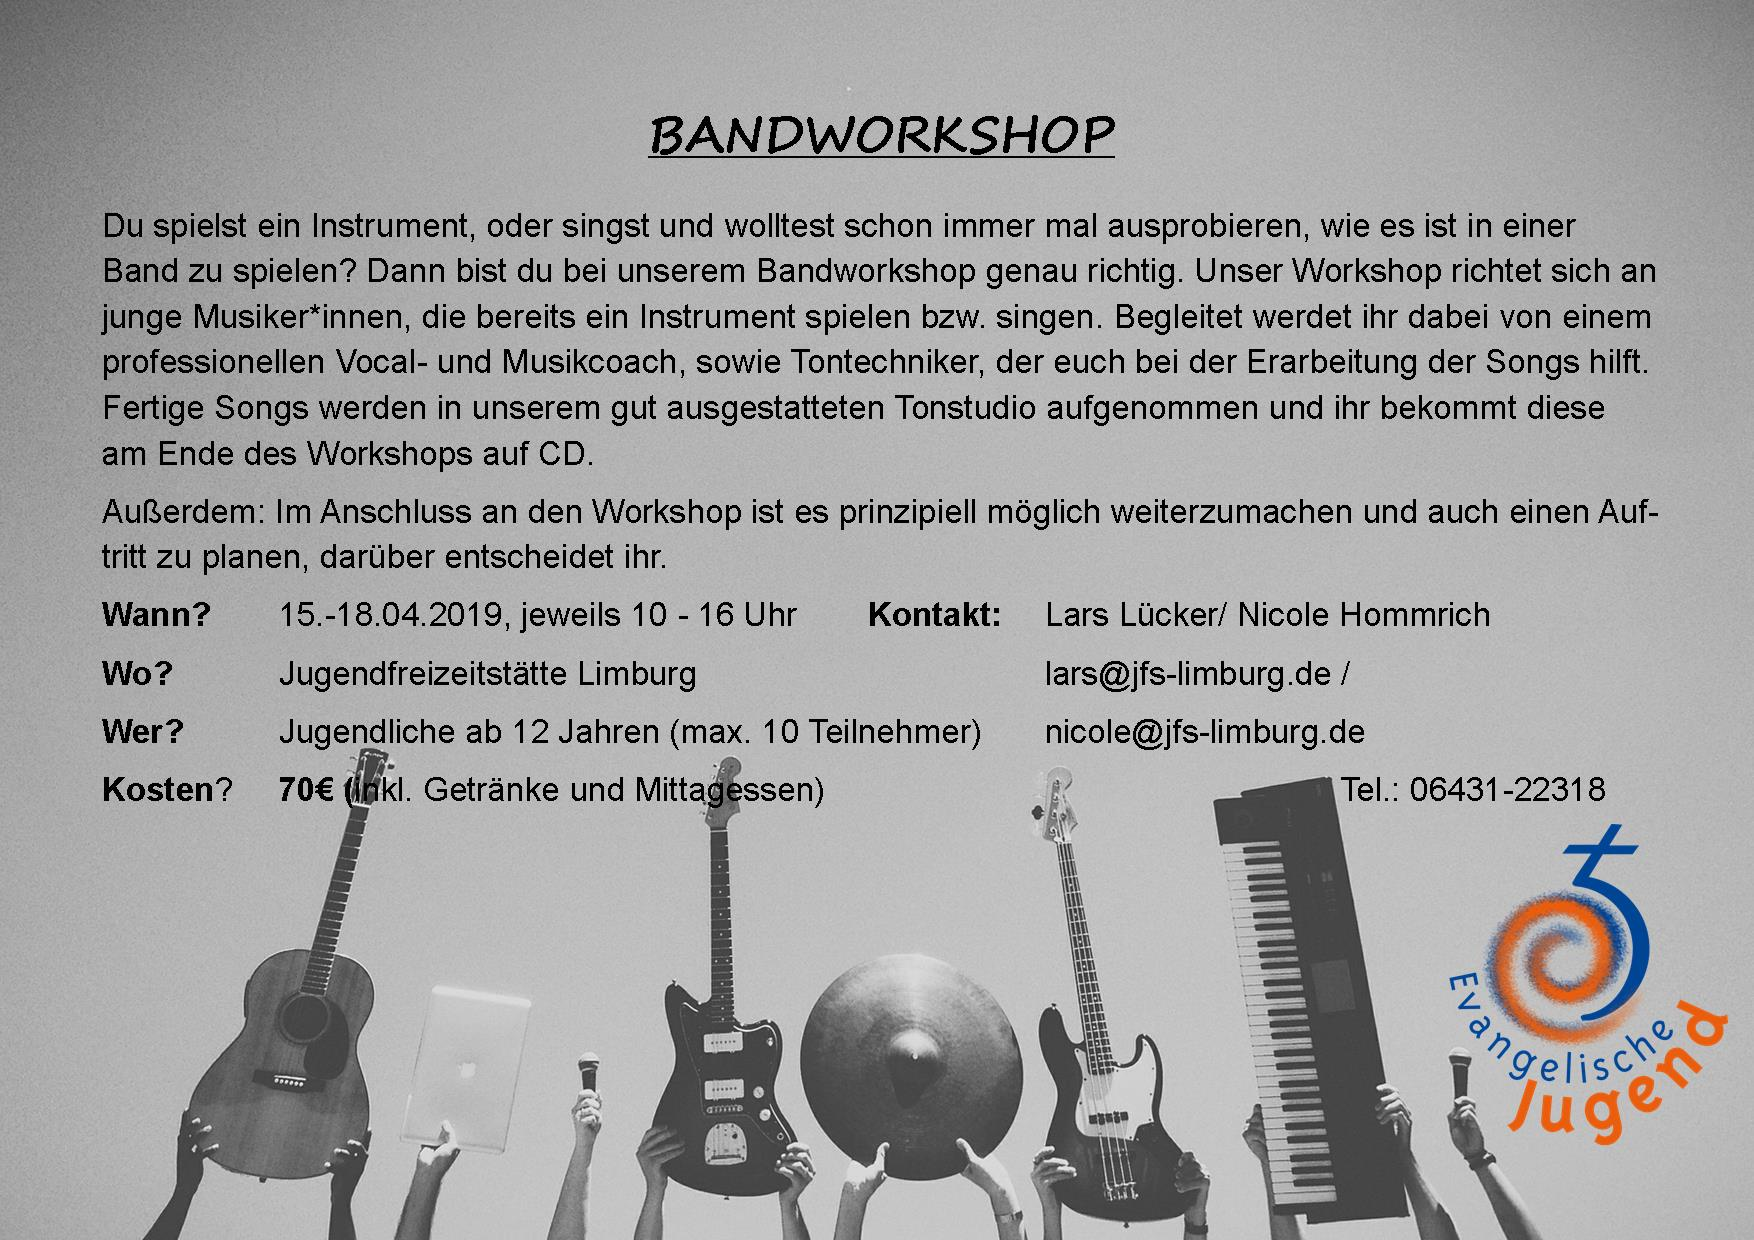 Bandworkshop JFS 2019